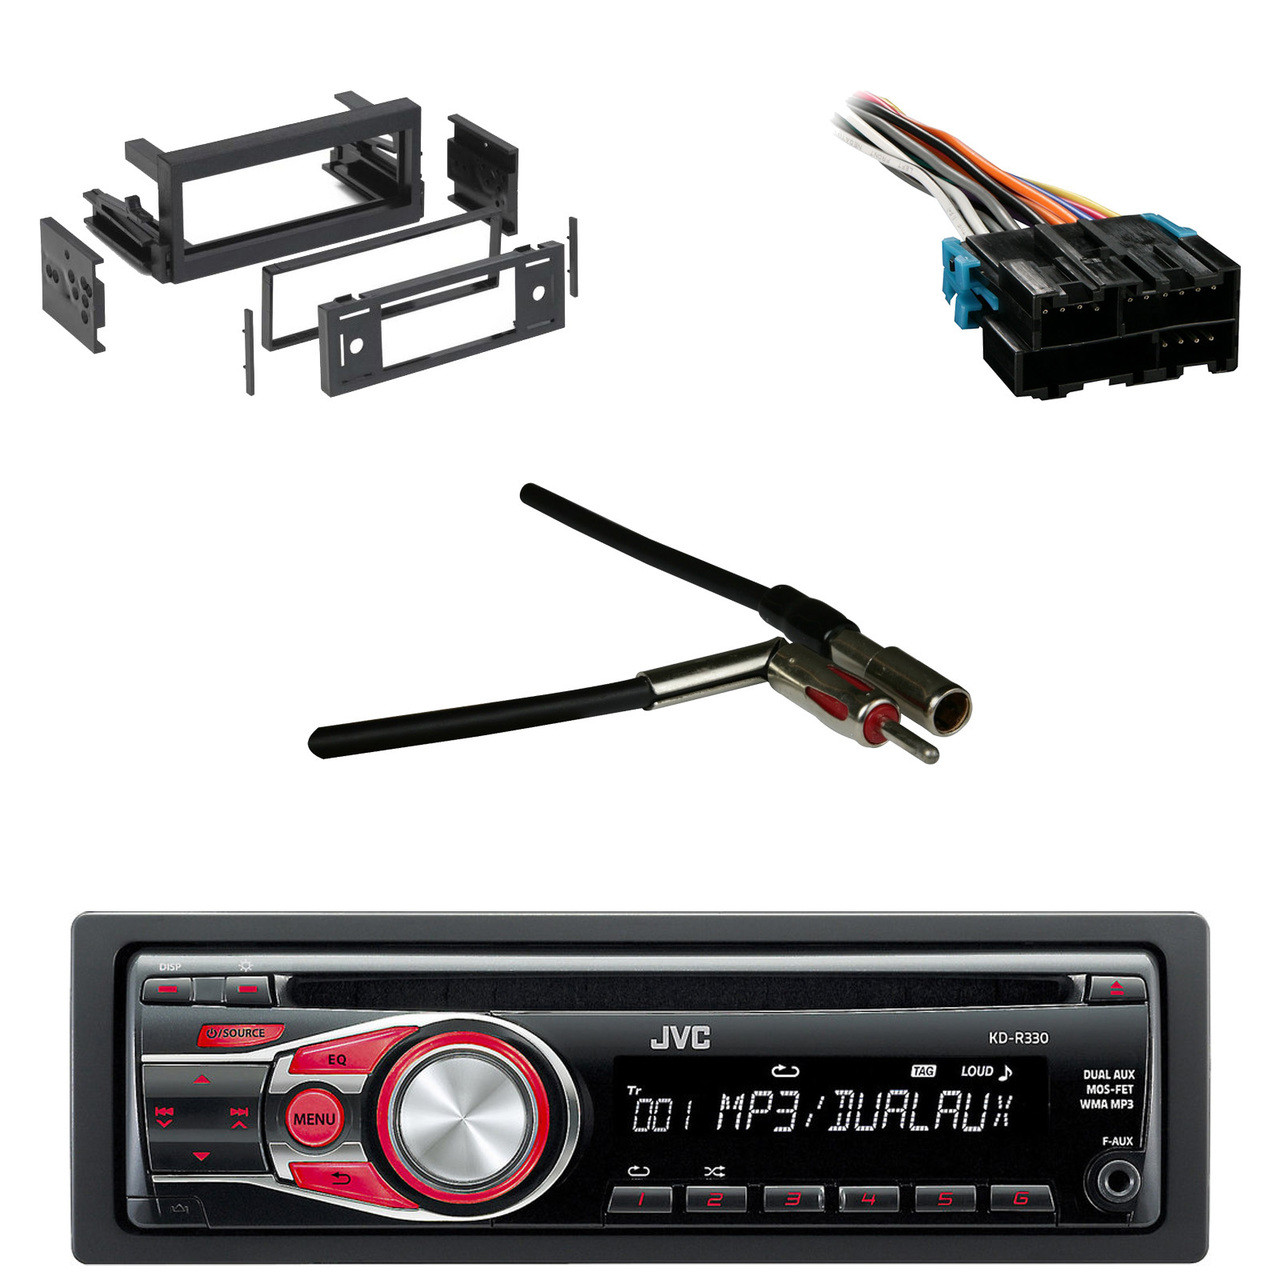 JVC KDR330 CD AUX Car Radio, Antenn Adapter, GM Wire Harness, GM Dash on jvc kd g200 wiring-diagram, jvc r330 wiring-diagram, jvc kd avx2 wiring-diagram, jvc kd avx1 wiring-diagram, jvc cd player wiring-diagram, jvc harness diagram, jvc double din, jvc dvd head unit without screen, jvc kd sx-770 wiring-diagram, jvc kd g210 wiring-diagram,